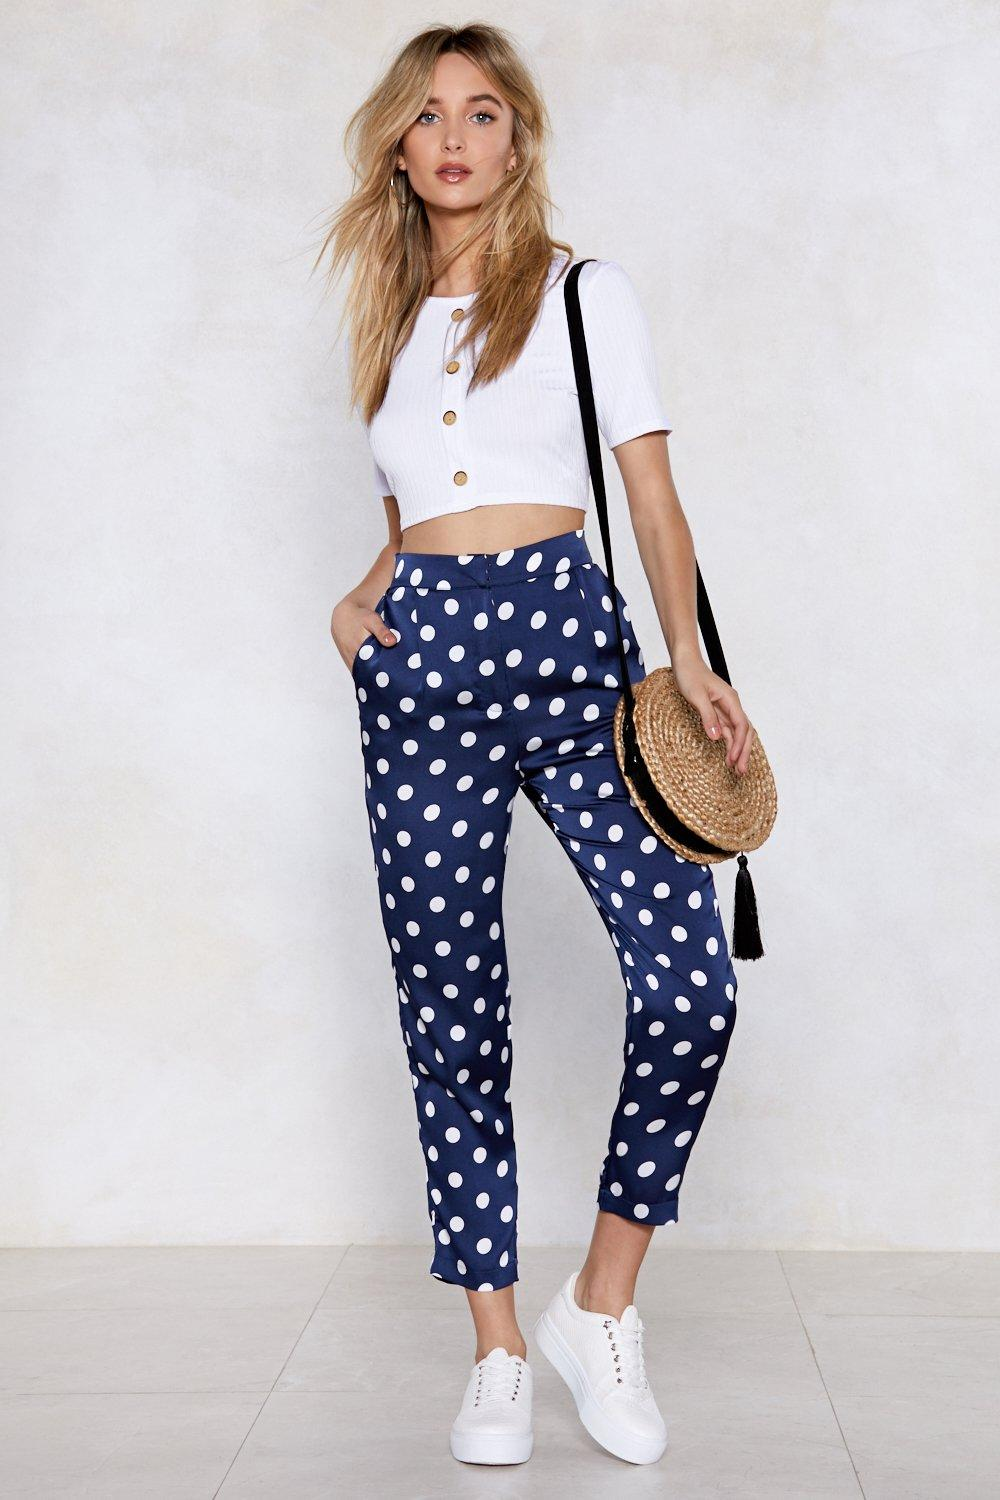 a1ea1f7655 Come Round My Way Polka Dot Pants | Shop Clothes at Nasty Gal!